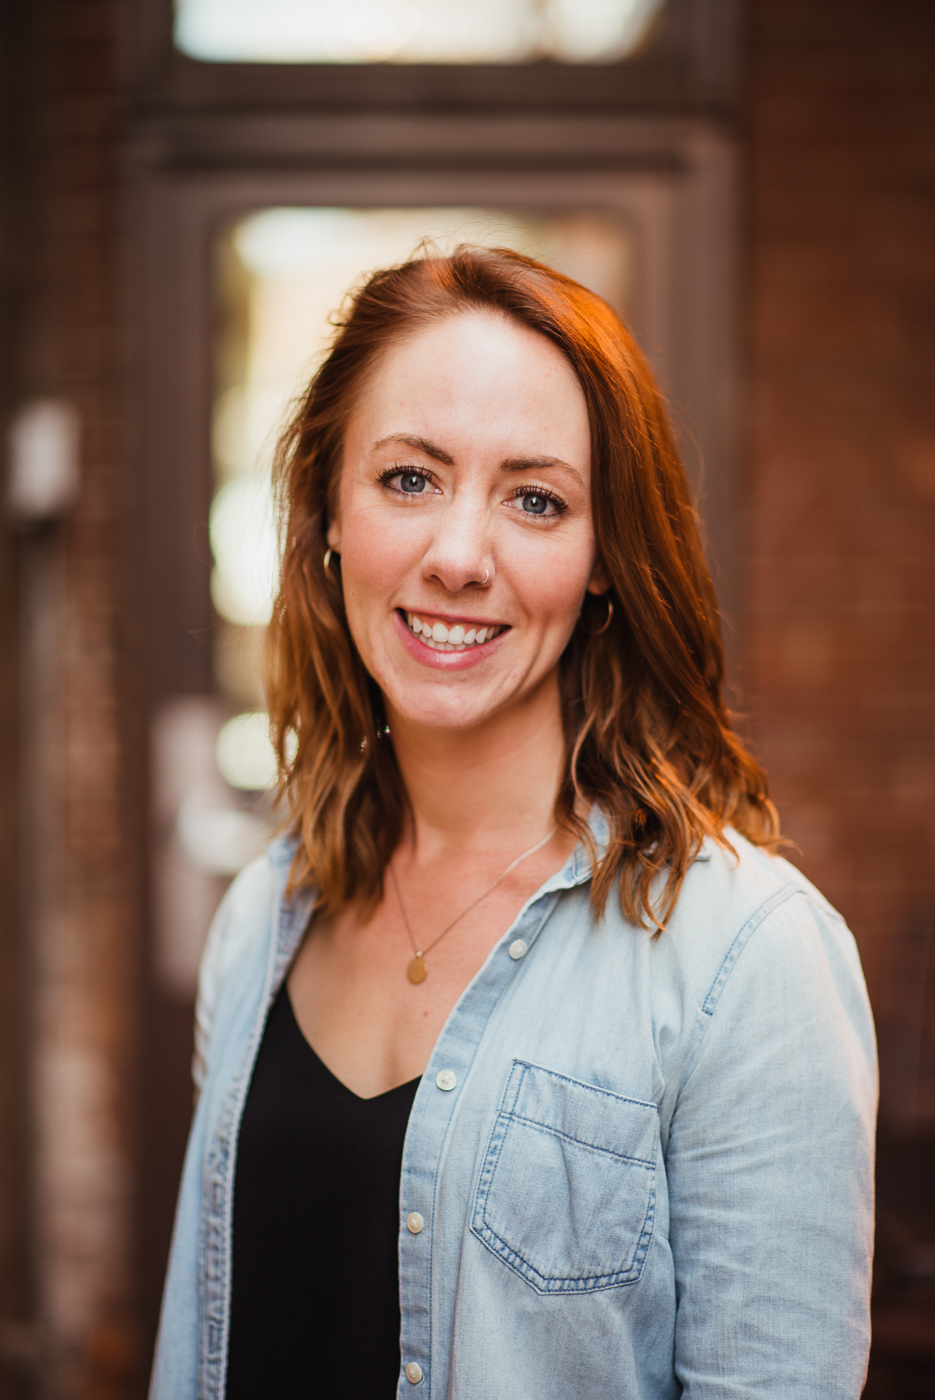 PHOCO Photography Fort Collins Colorado Old Town Professional Headshot-9.jpg